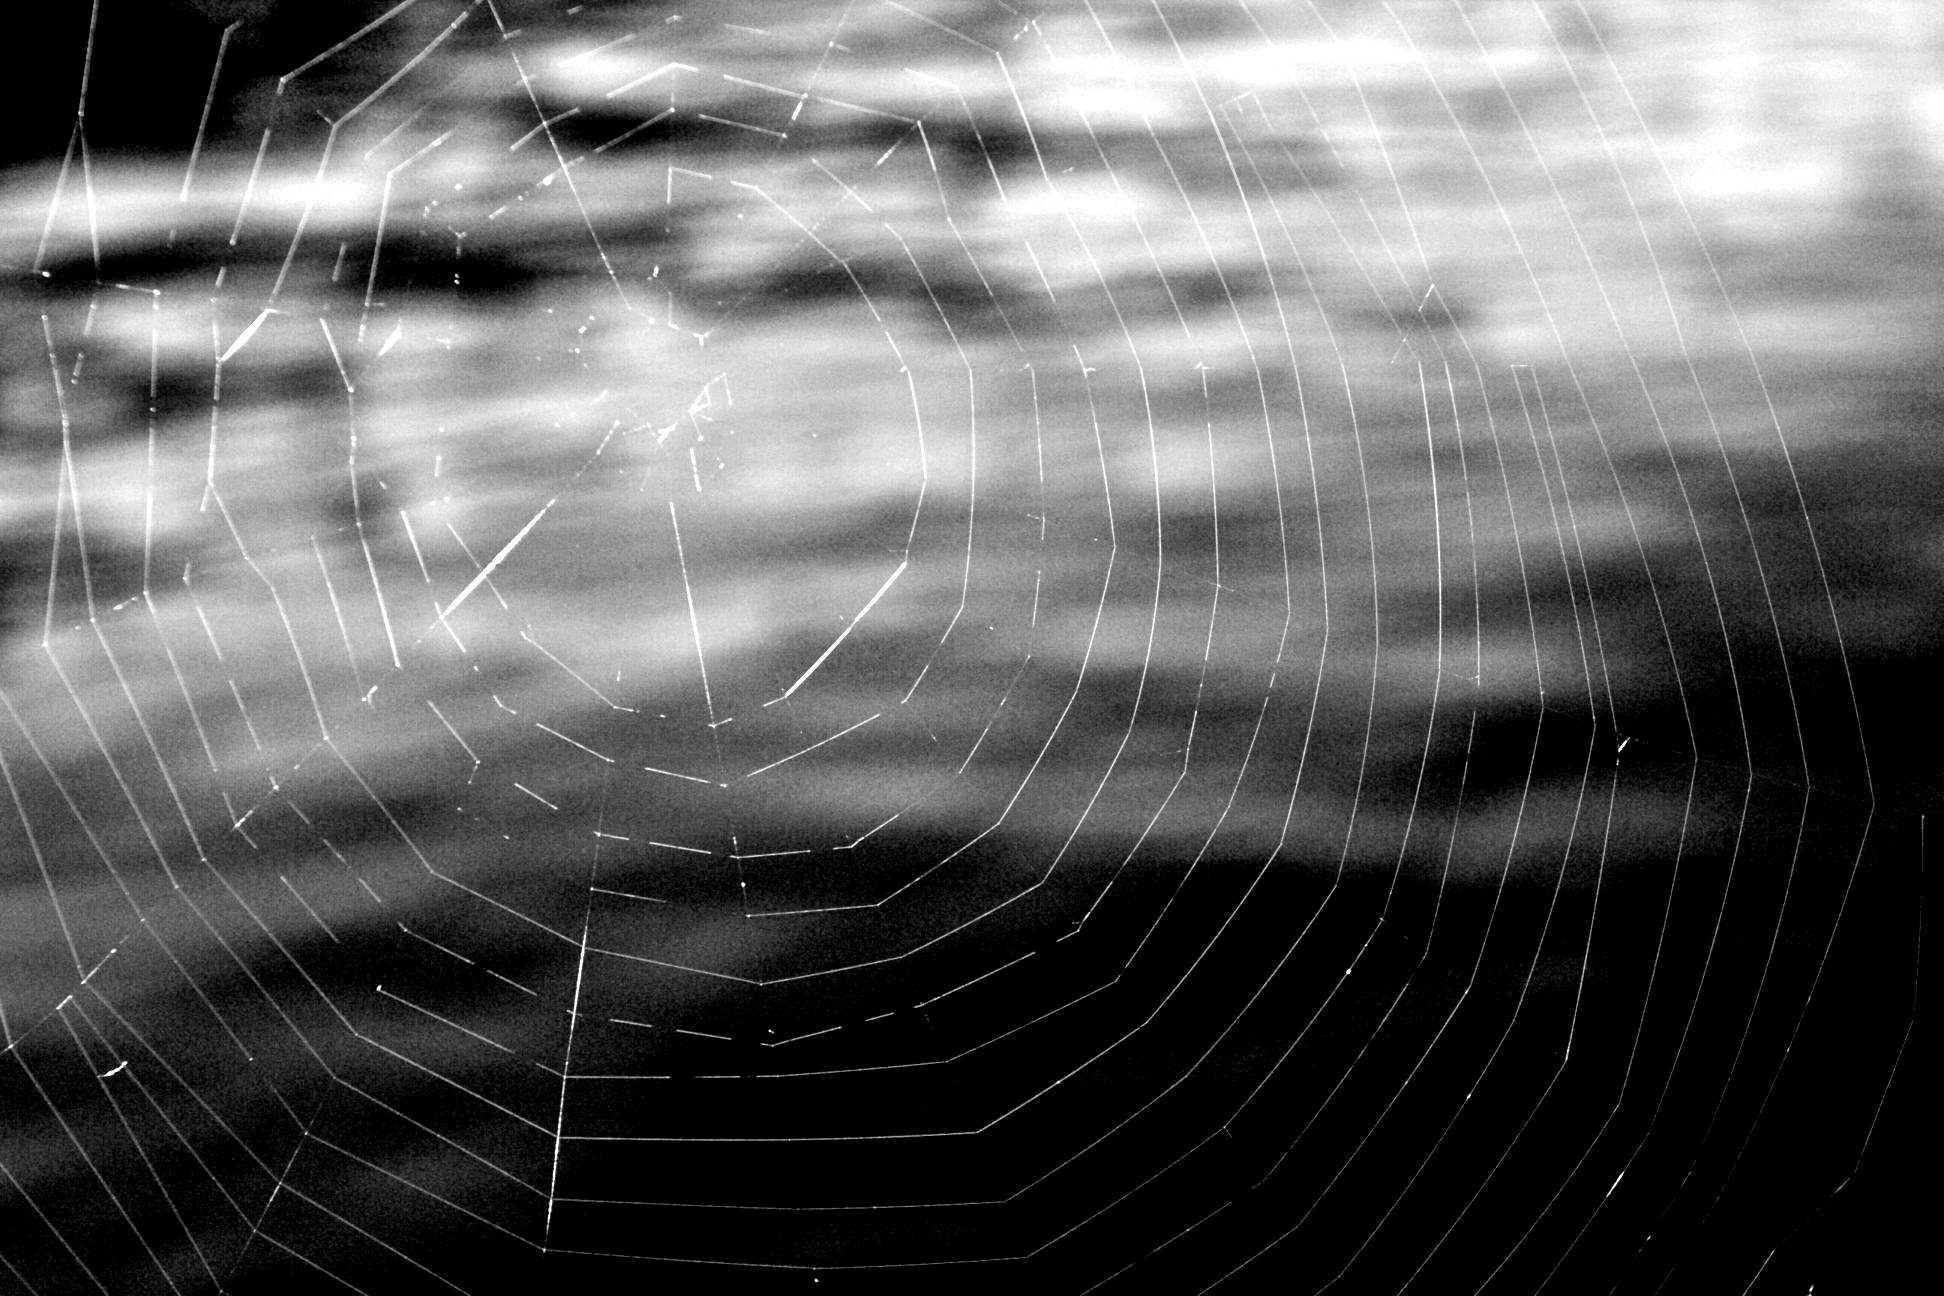 Photograph A spider made this by Rob Sentz on 500px